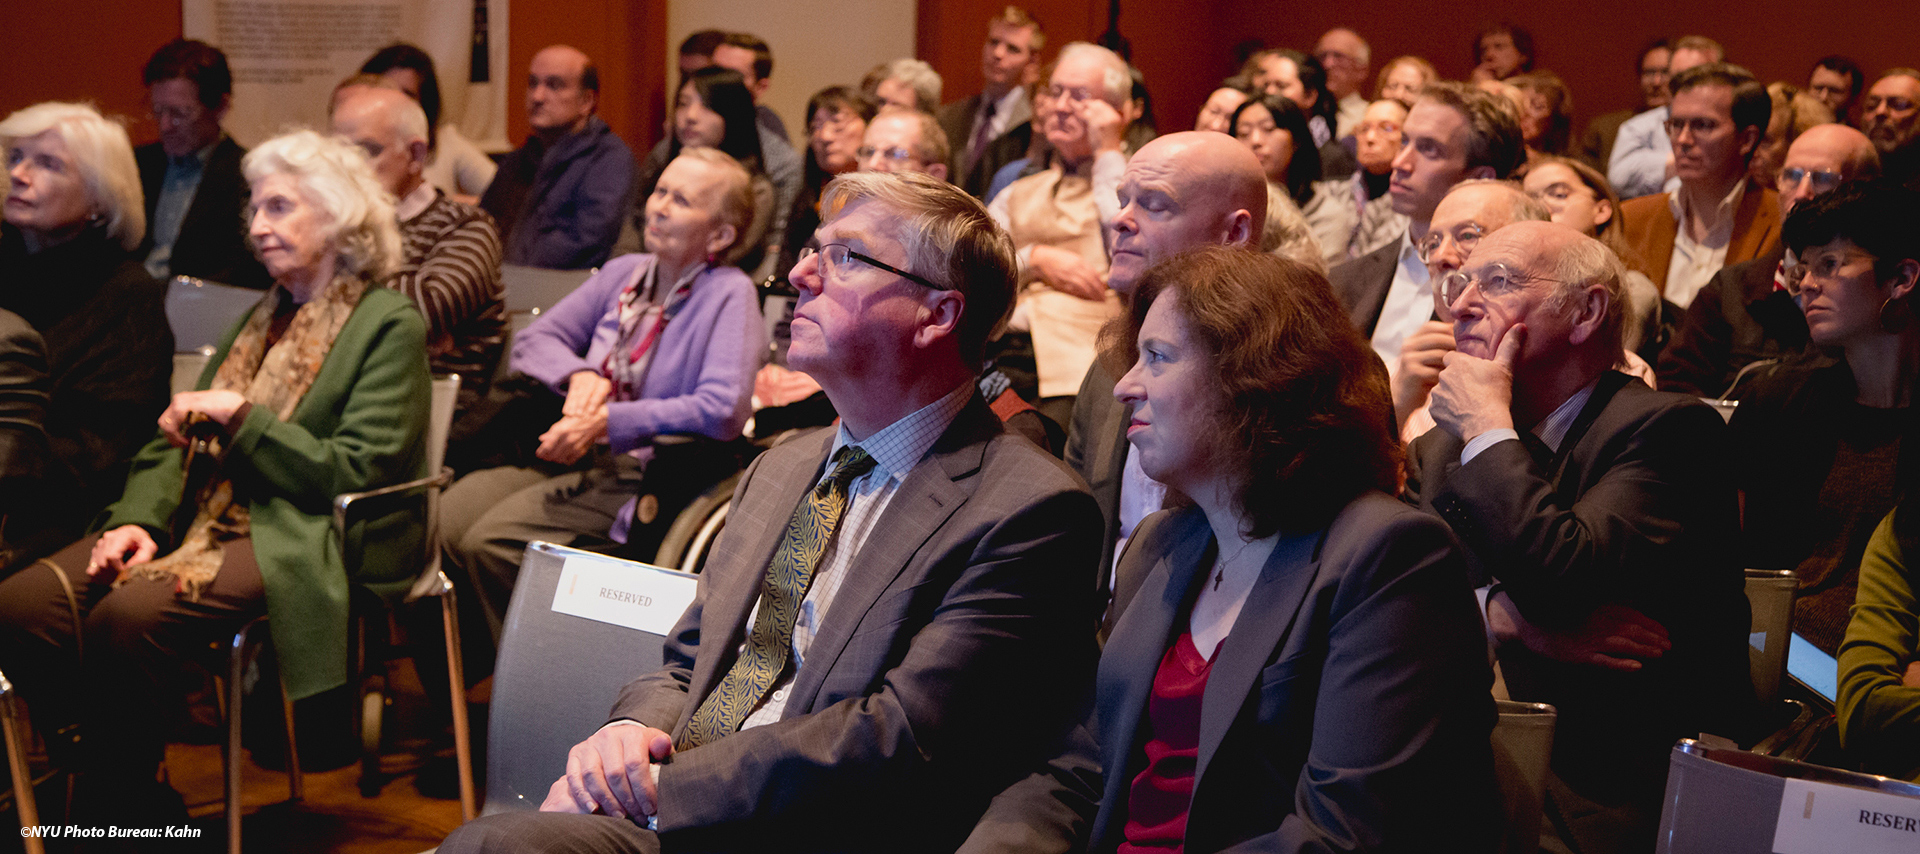 members of the audience at a lecture event